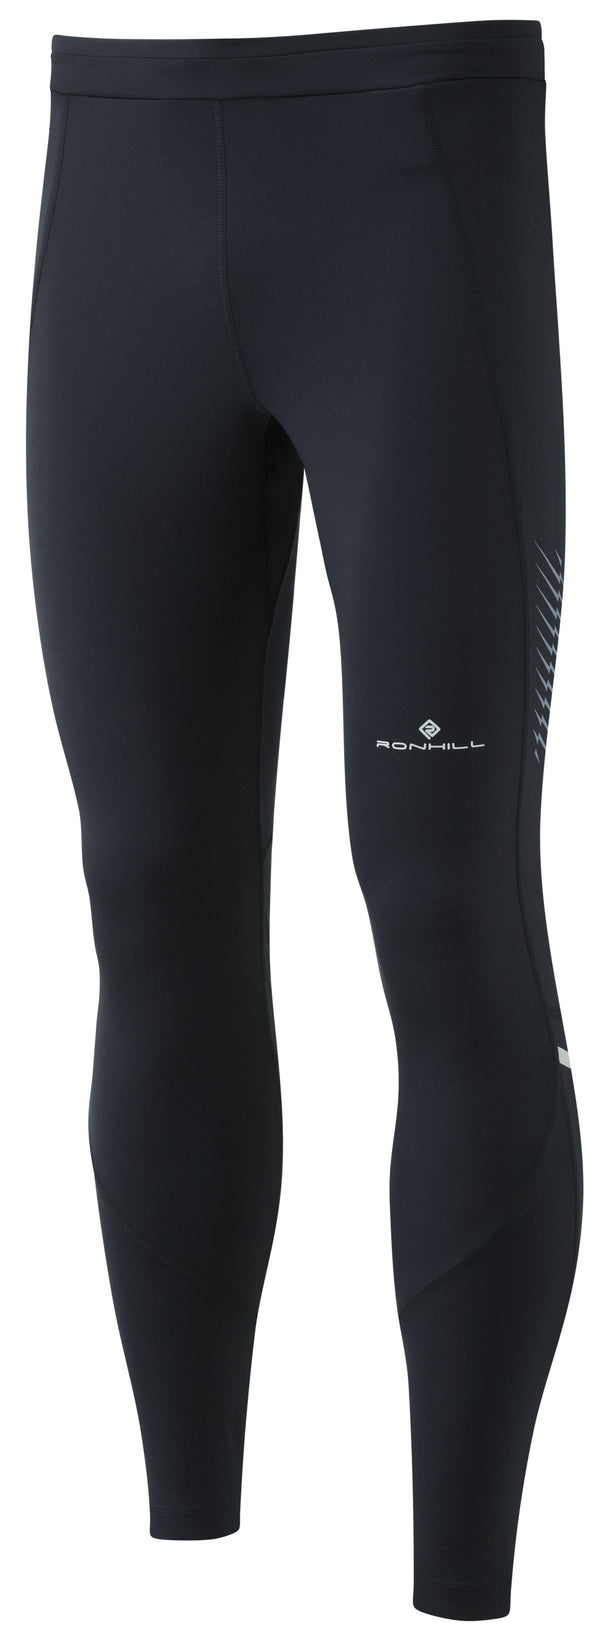 RonHill M Stride Stretch Tights - Black